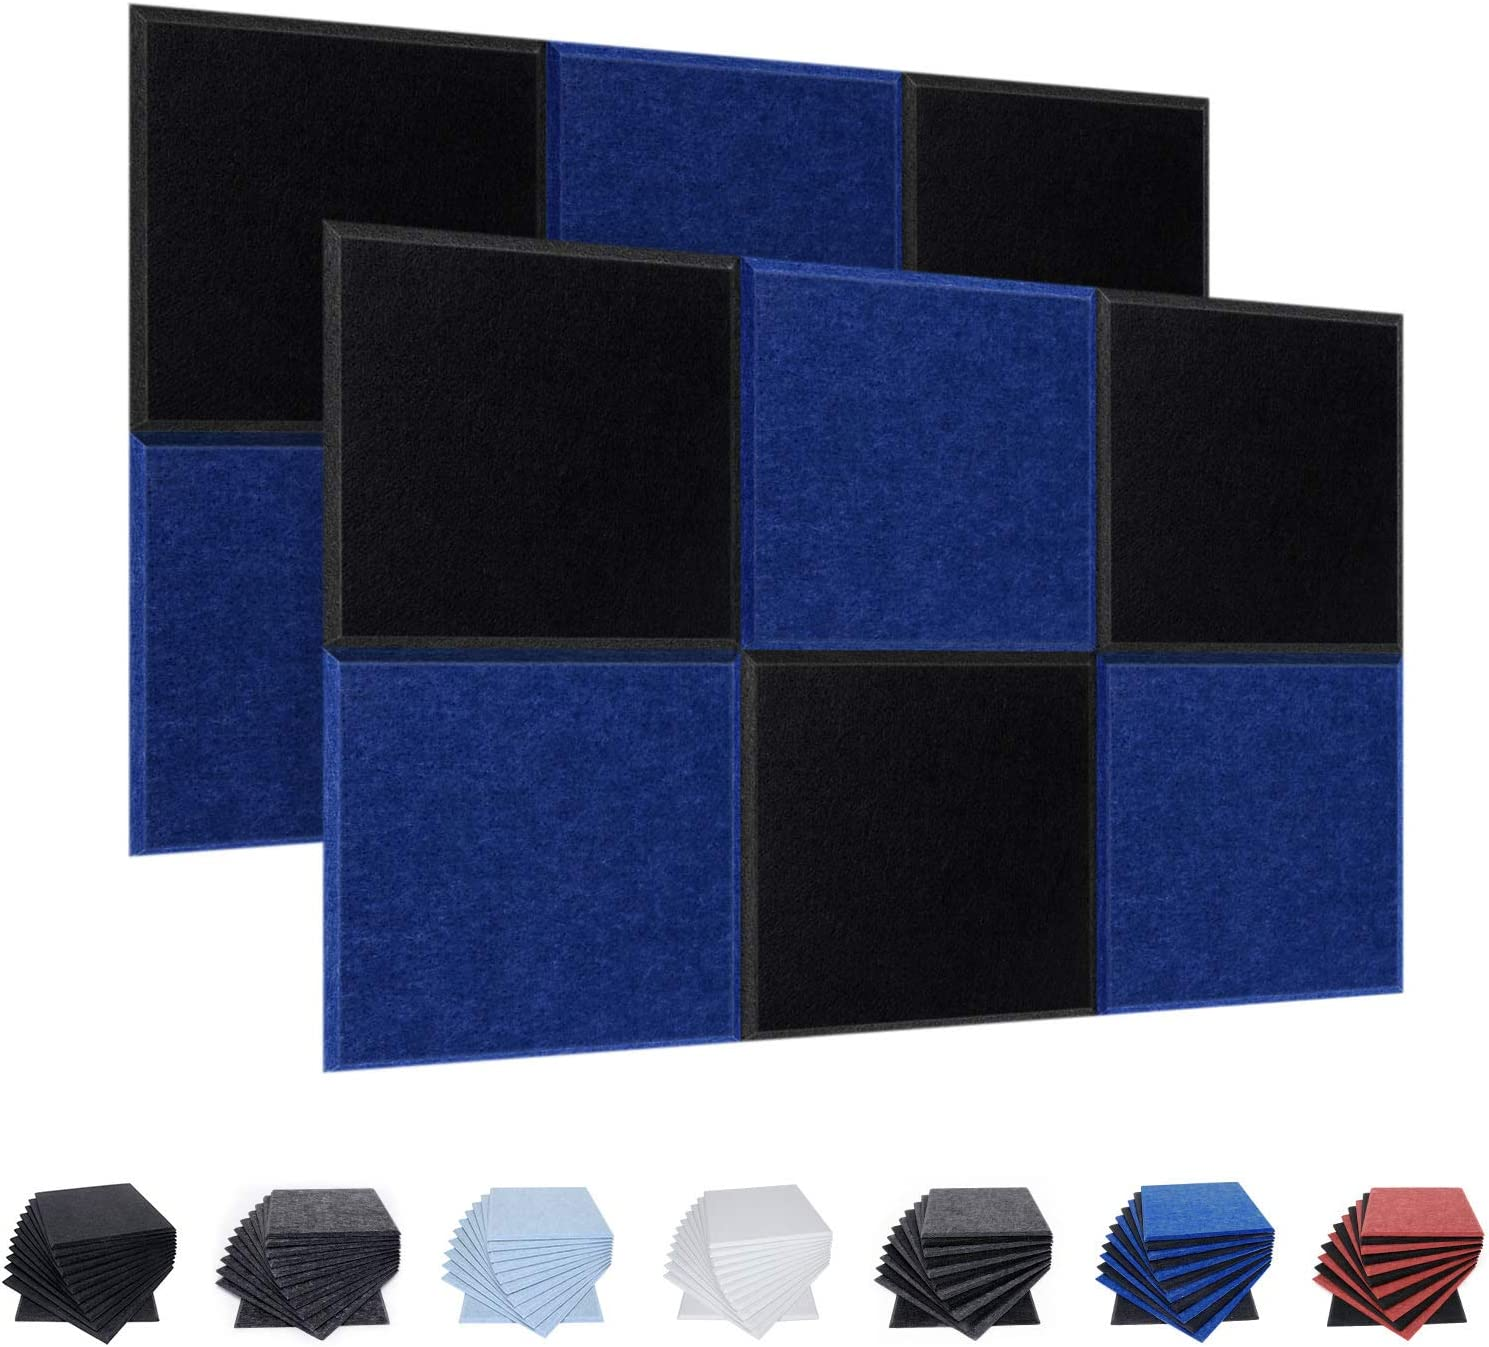 12 Pack Acoustic Panels, 12 X 12 X 0.4 Inches Studio Foam Sound Proof Padding, High Density Beveled Edge Soundproofing Insulation Absorption Panel, Acoustic Treatment for Home Office (Black & Blue)